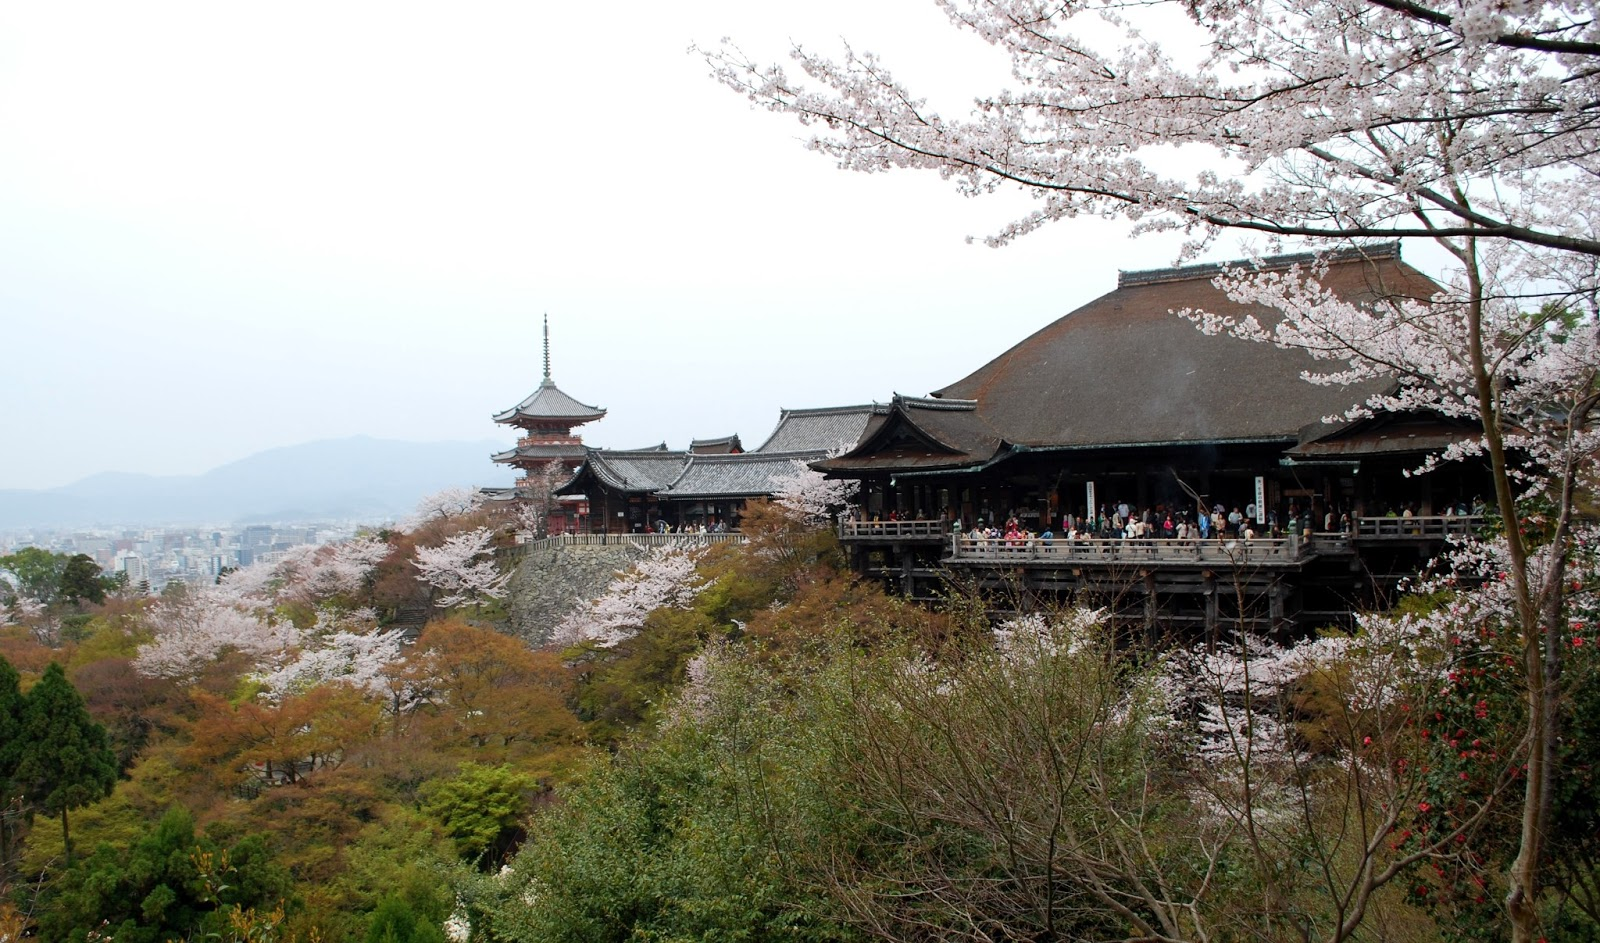 Kiyomizu-dera in Kyoto